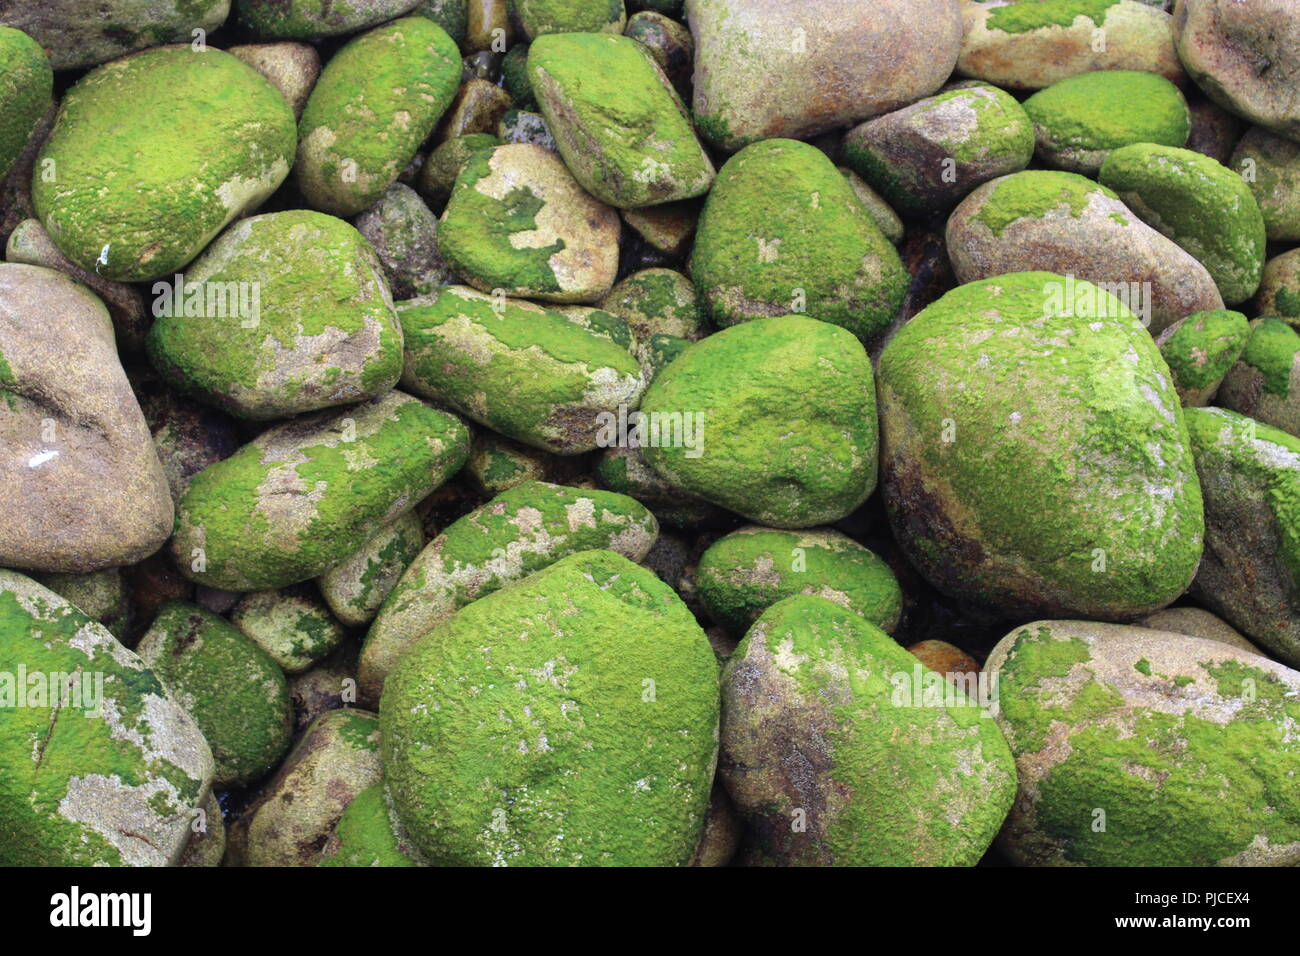 Green stones by the beach in the Cies Islands. - Stock Image